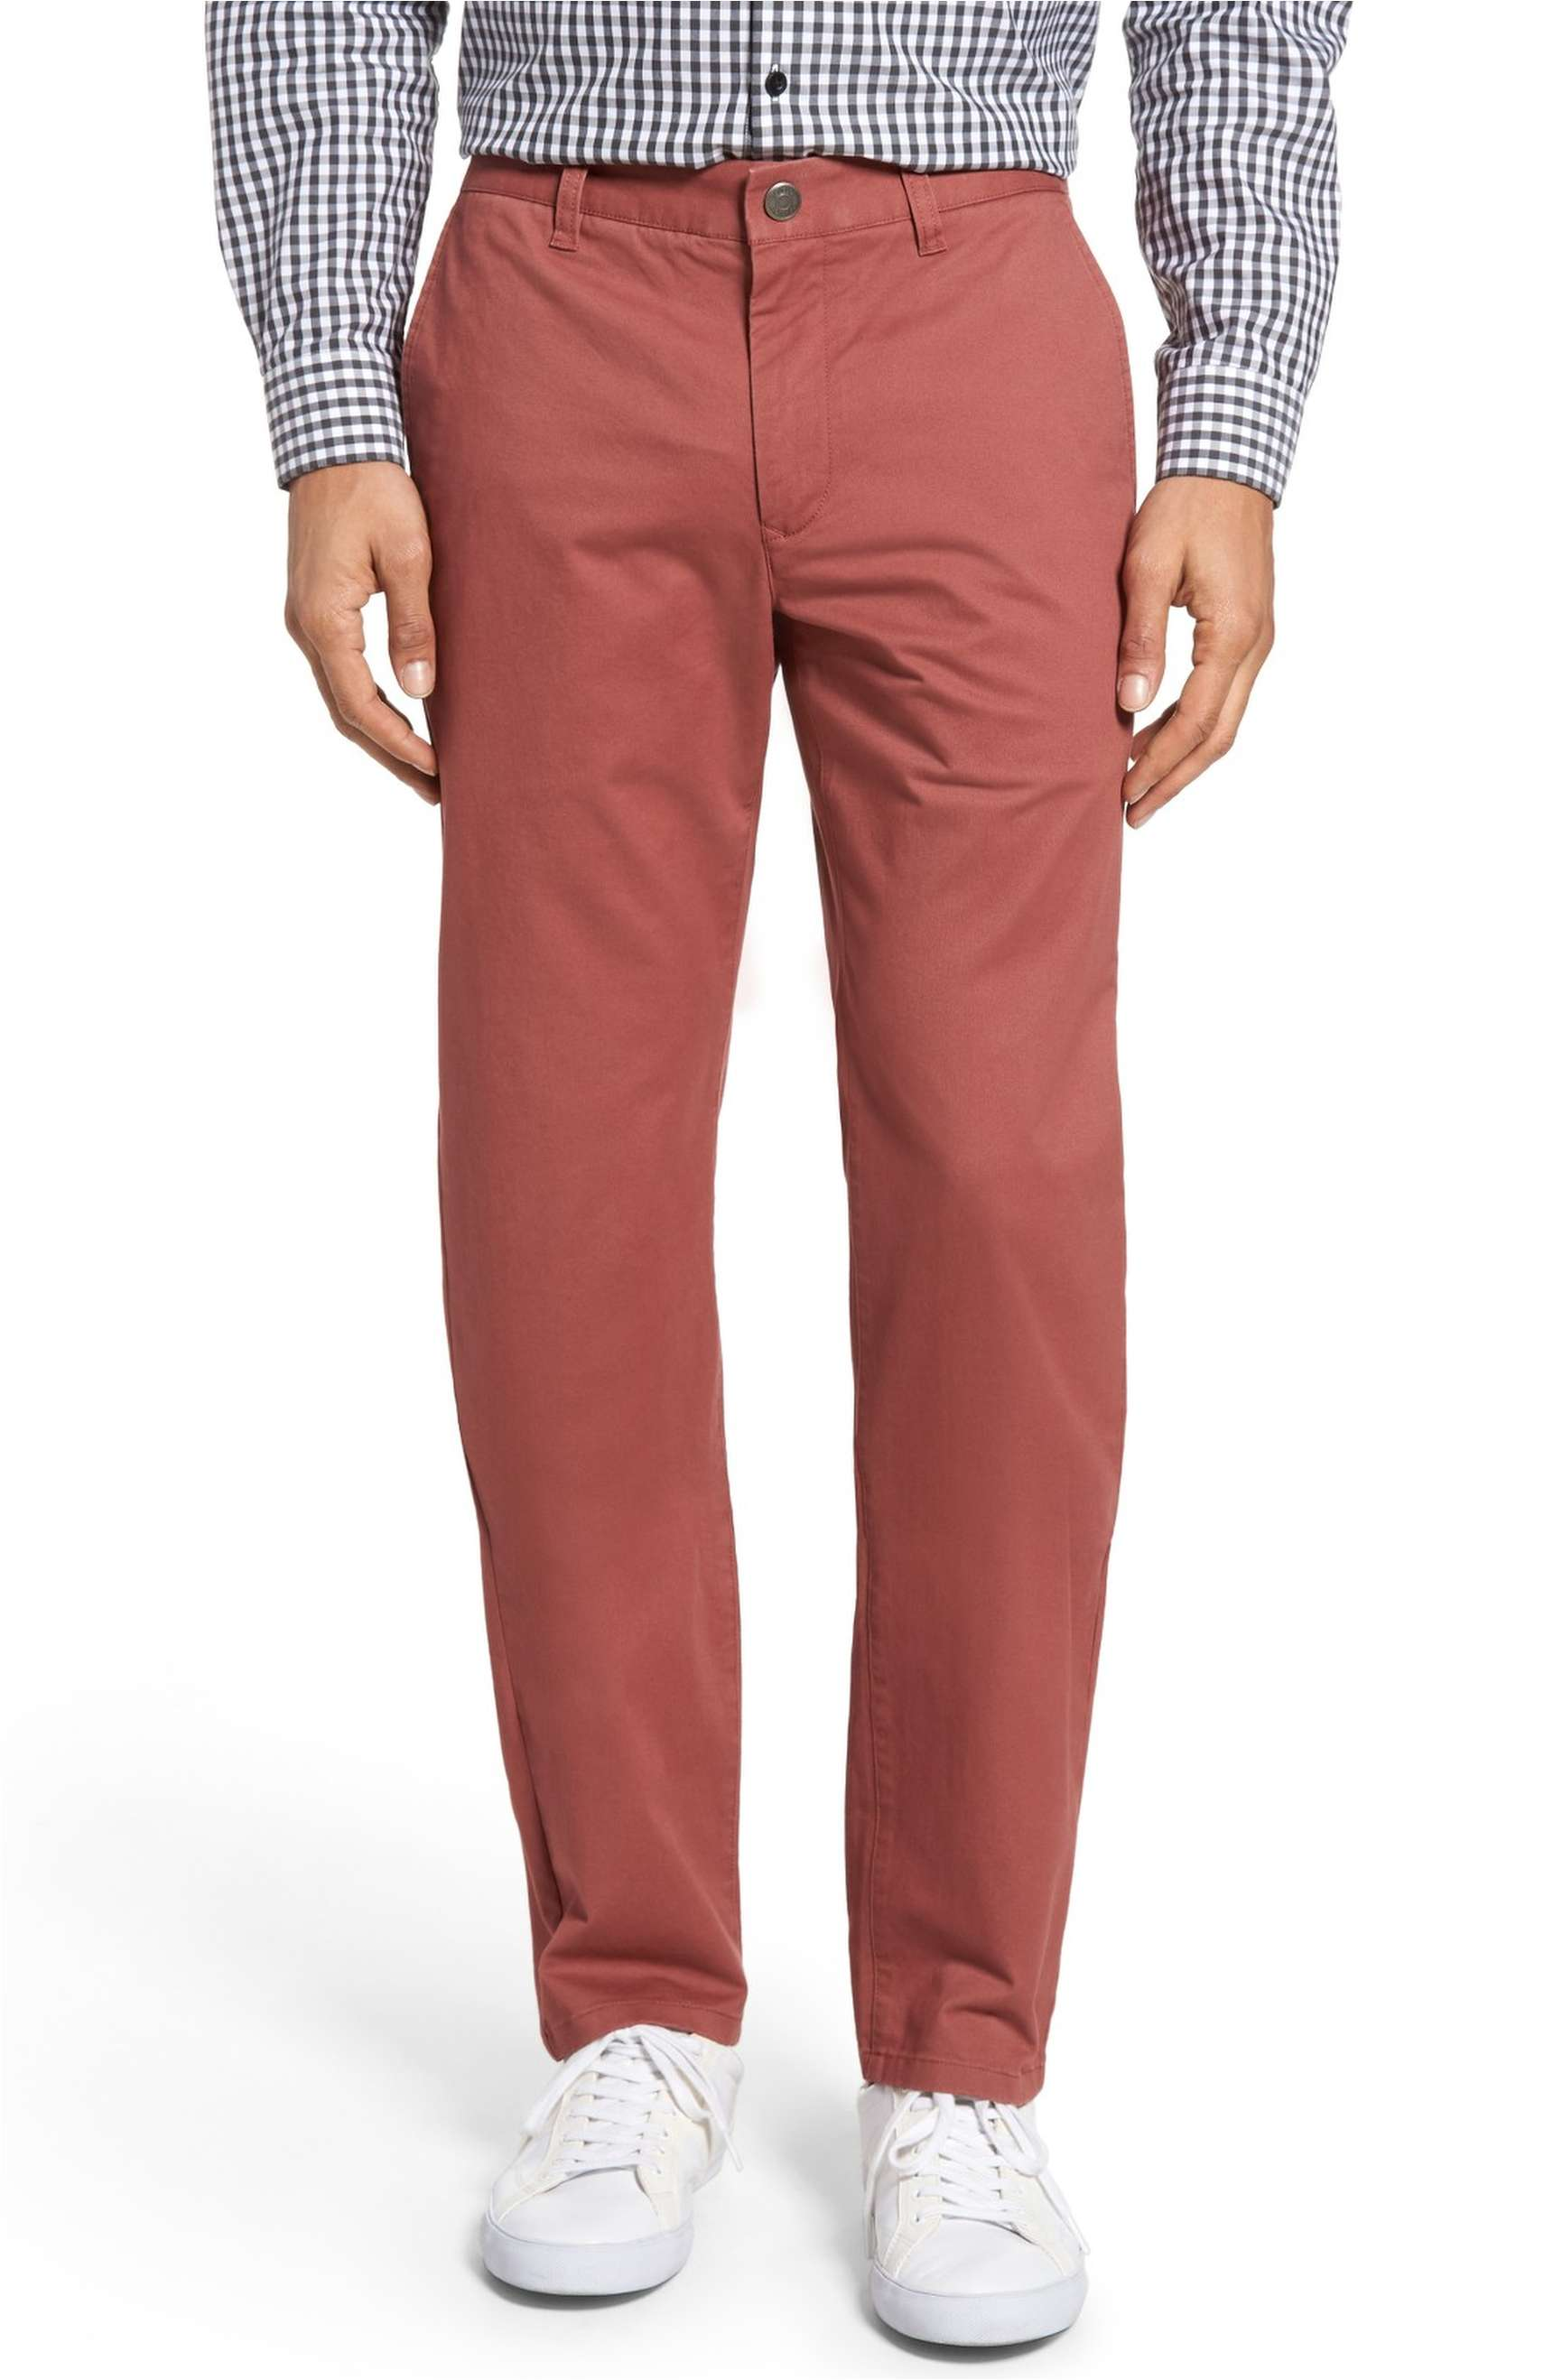 The Slim Fit Chinos